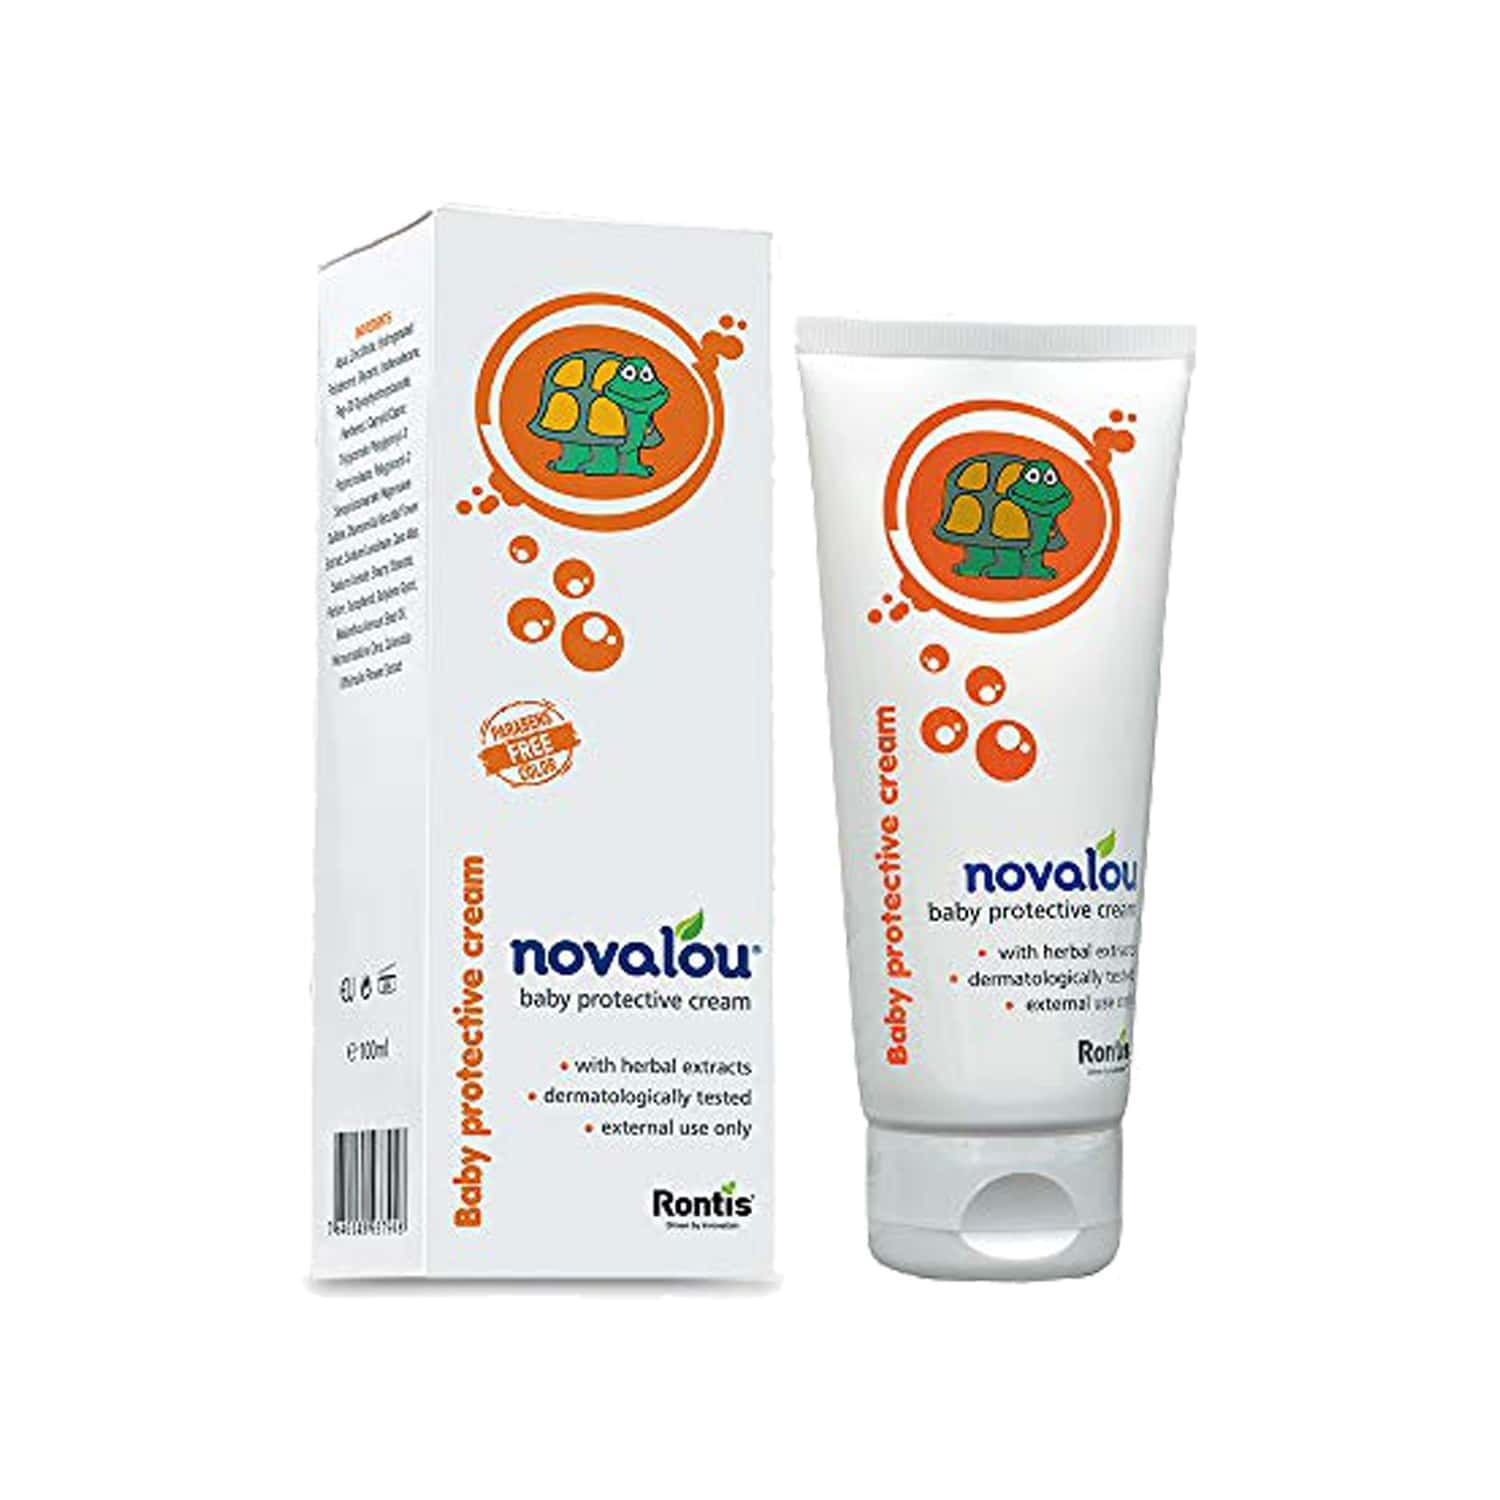 Novalou Dermatologically Tested Diaper Rash Cream For Infants With Eu Certified Organic Ingredients